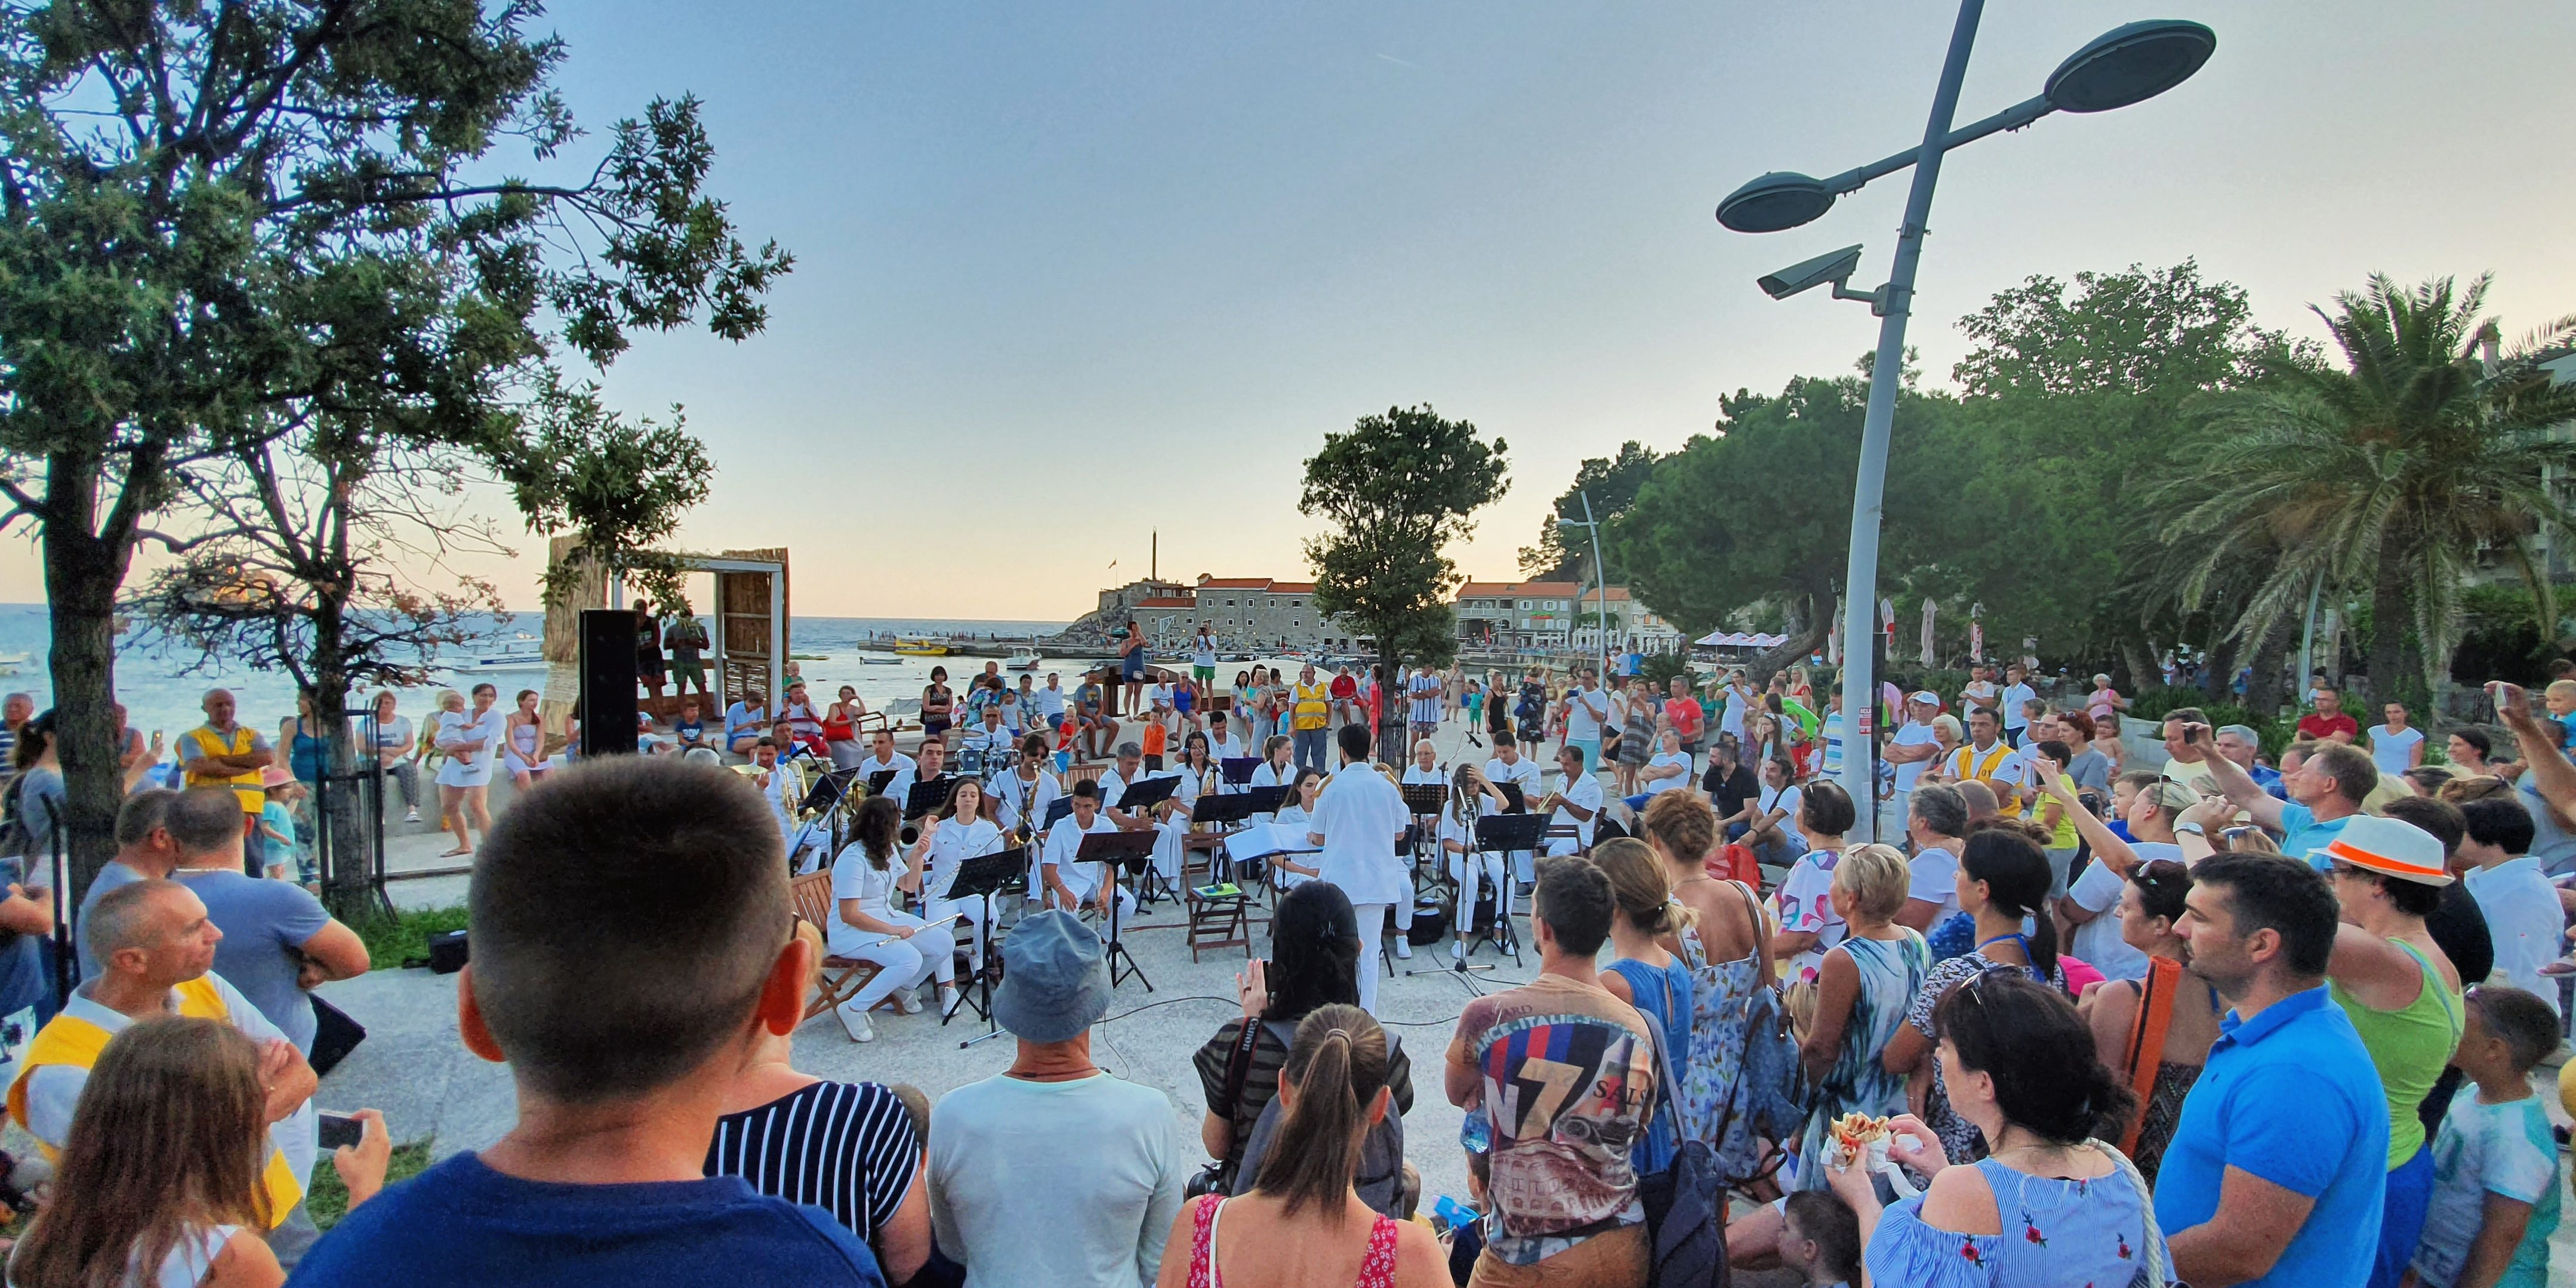 budva-beach-bar budva-marina budva-nightlife budva-caffes budva-hotels